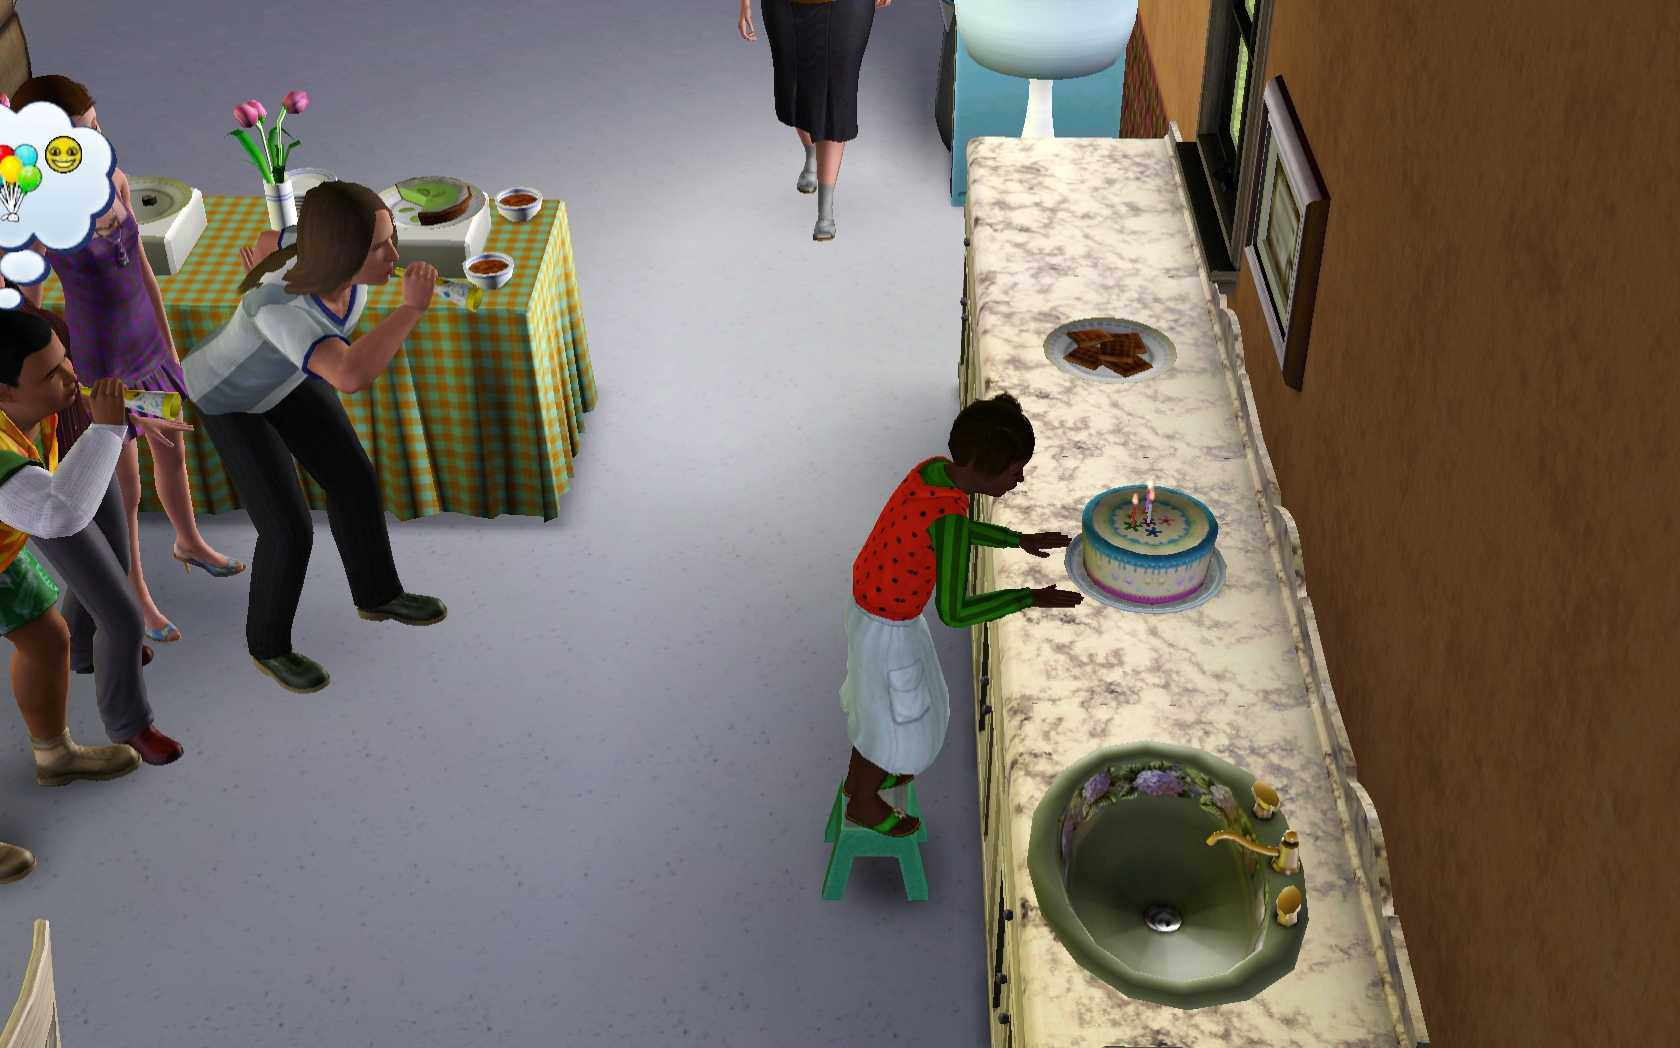 The Sims 3 Children: Life, Skills, and School